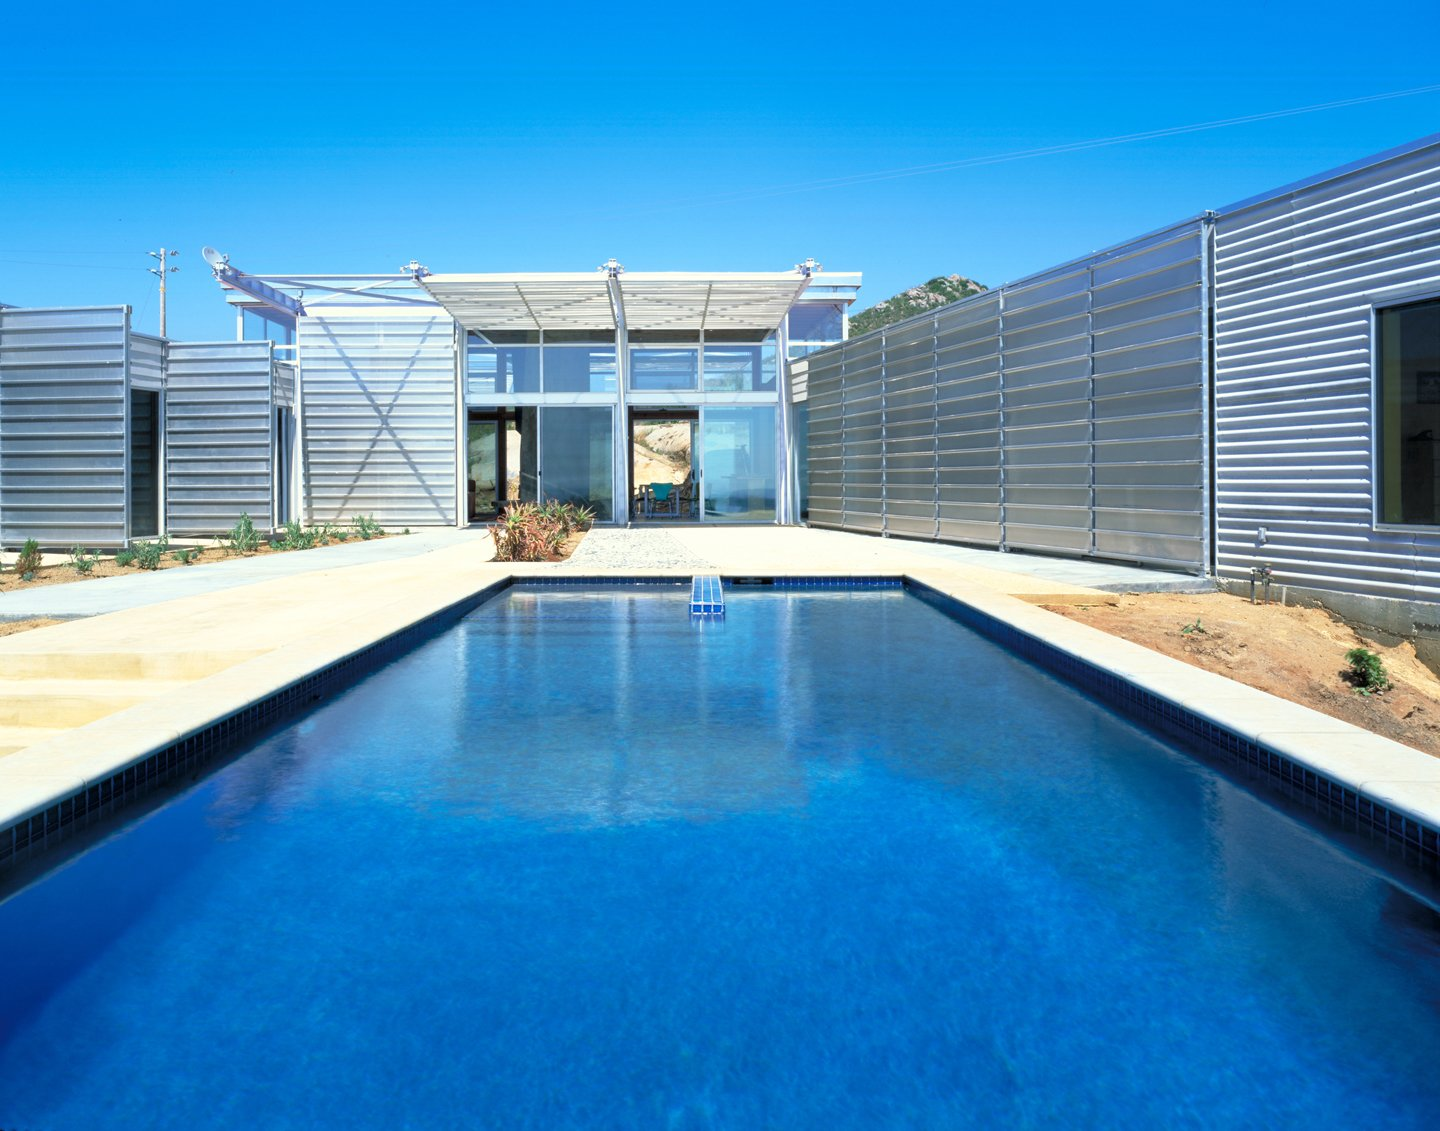 #exterior #outside #outdoor #pool #pooldesign #eco #green #sustainable #ValleyCenter #California #KevinDalyArchitects